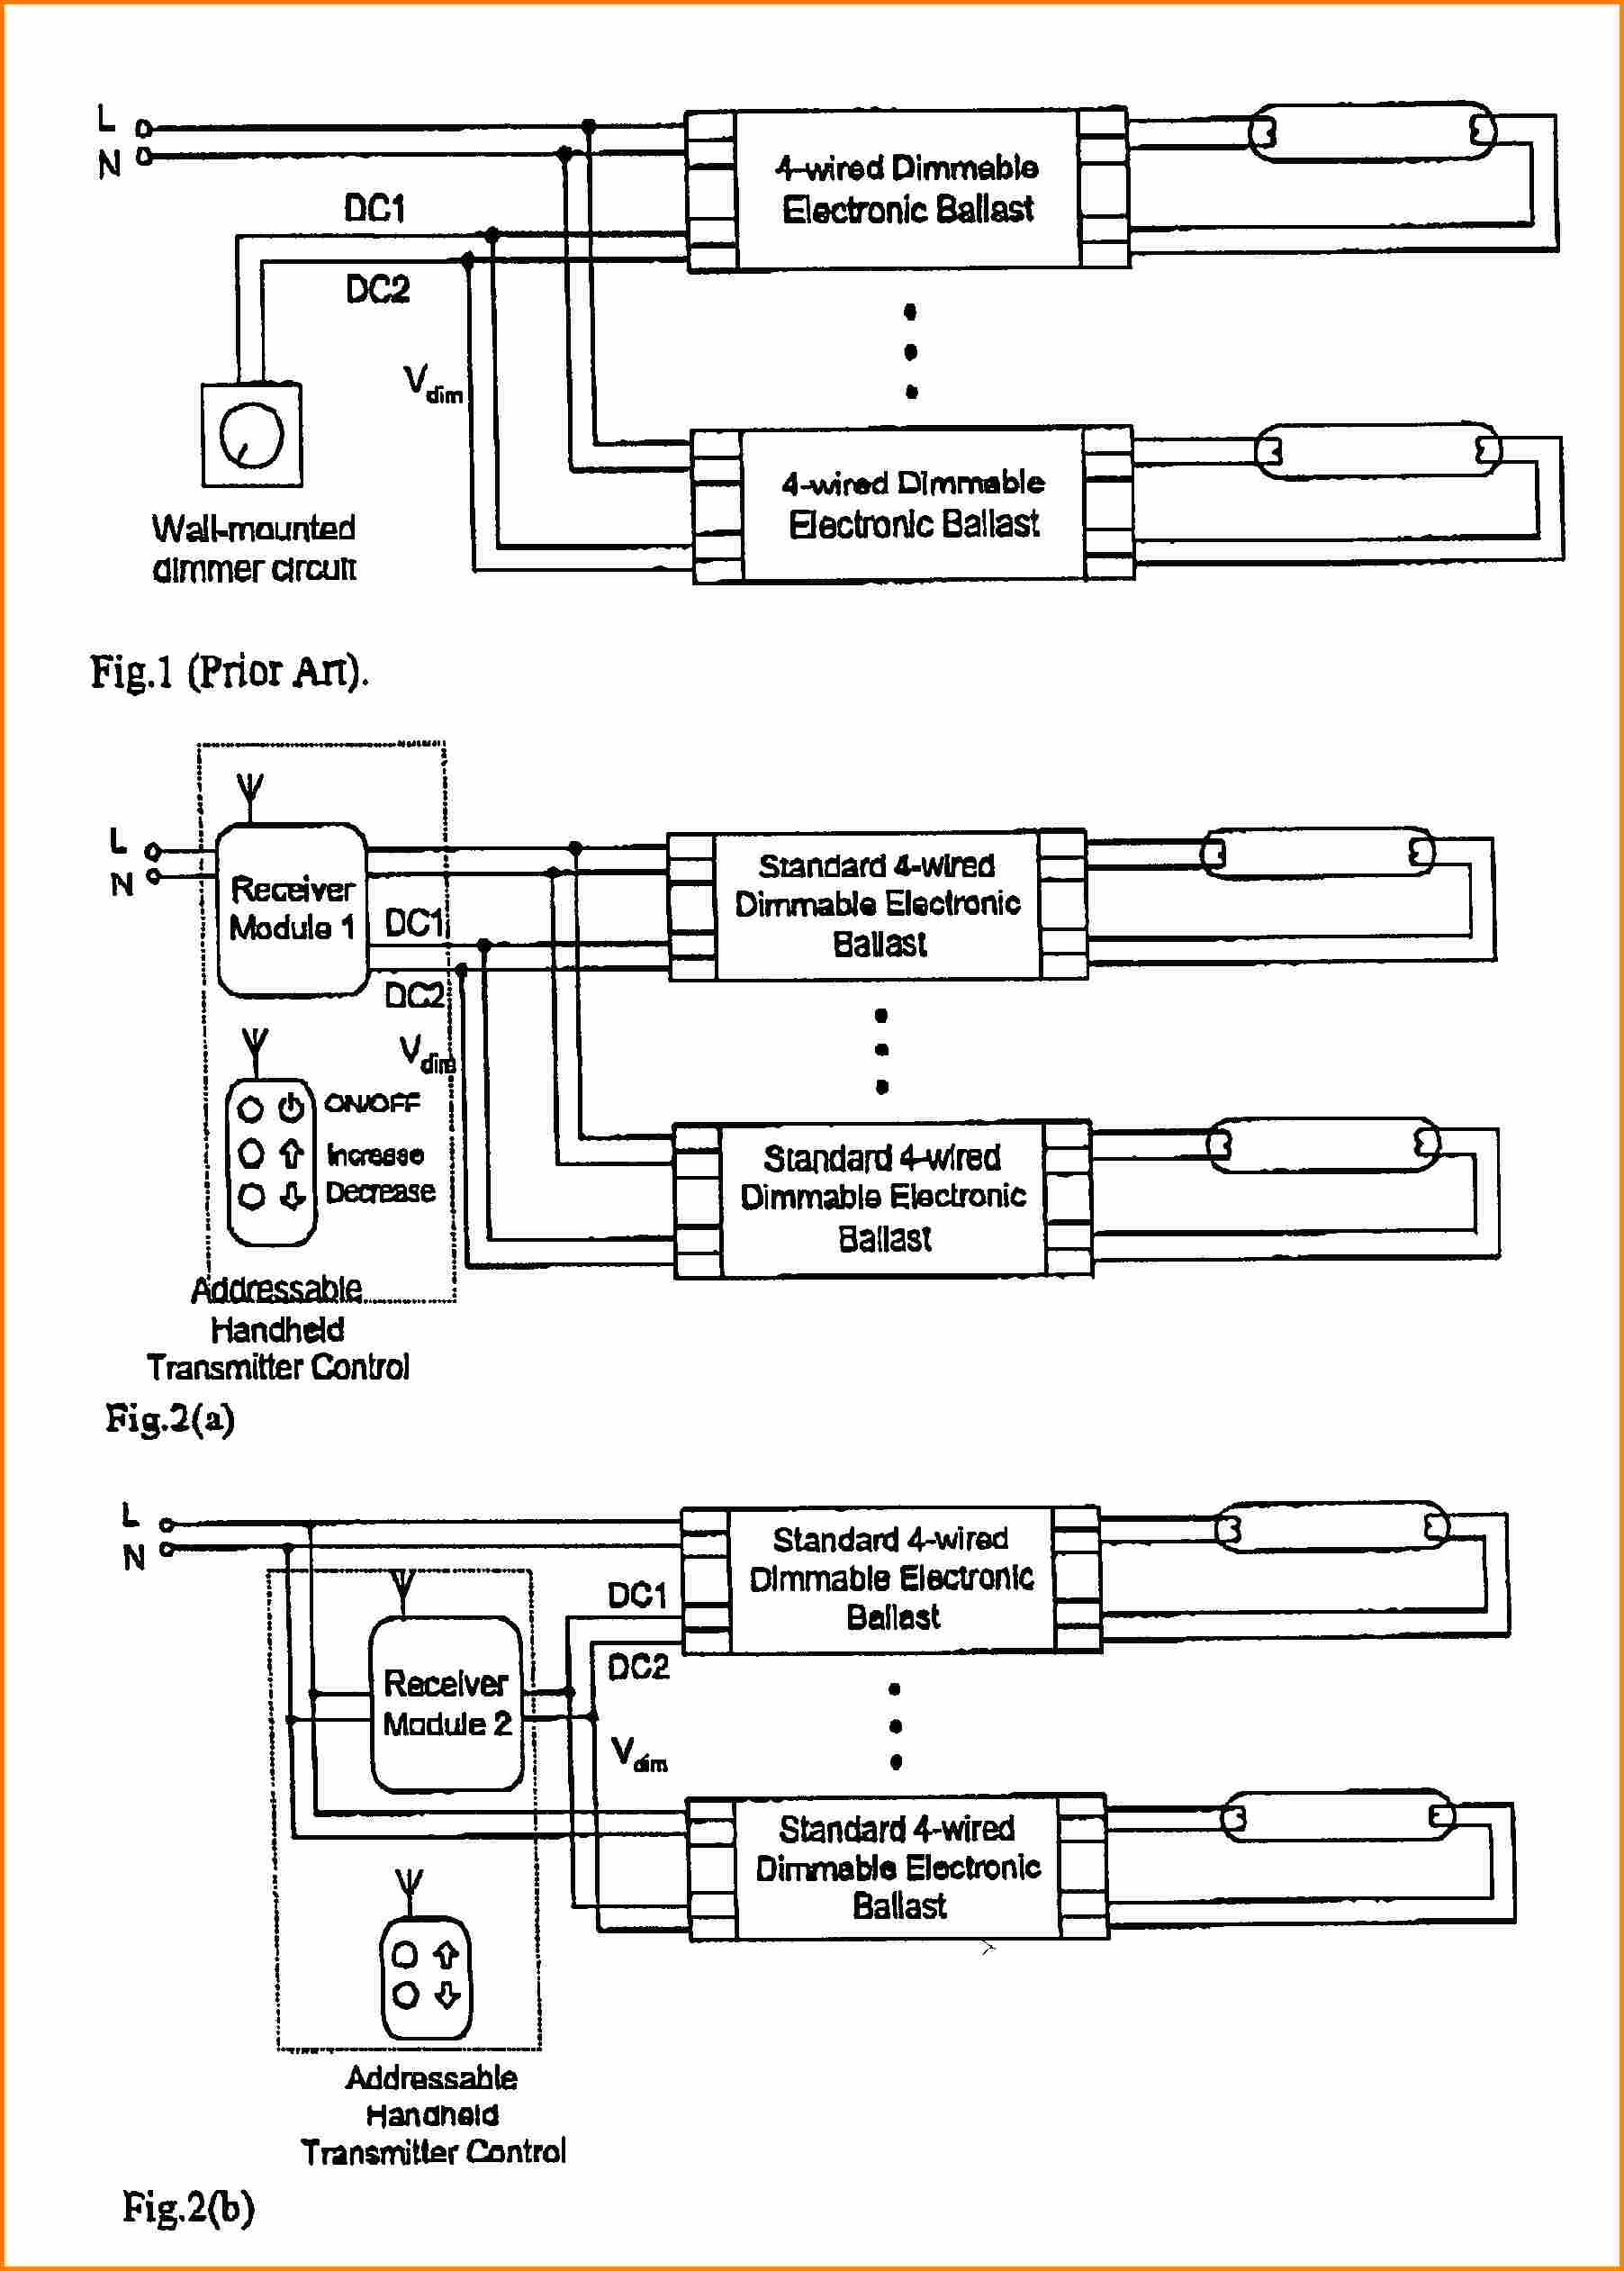 hight resolution of dimmable ballast wiring diagram wiring diagram blog electronic dimming ballast wiring diagram free download schema fluorescent